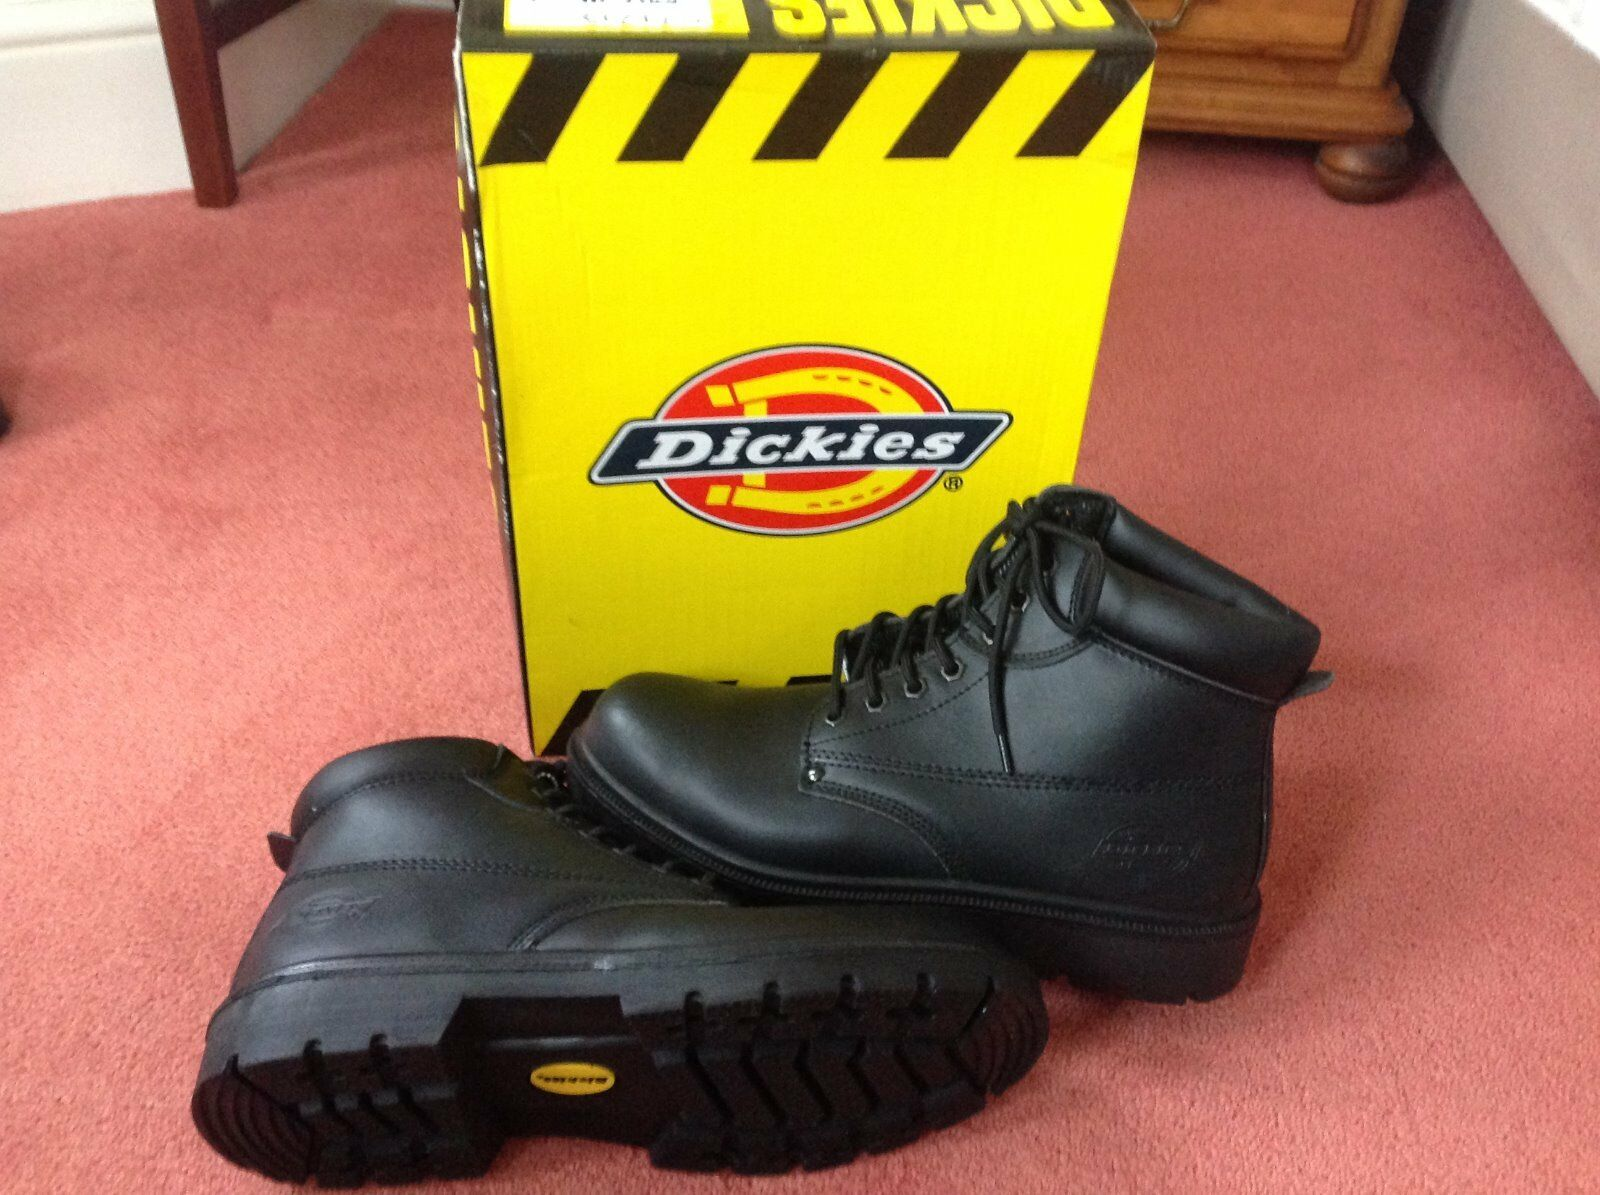 Dickies Steel Toe Capped Work Boots - Antrim - Black - Size 10